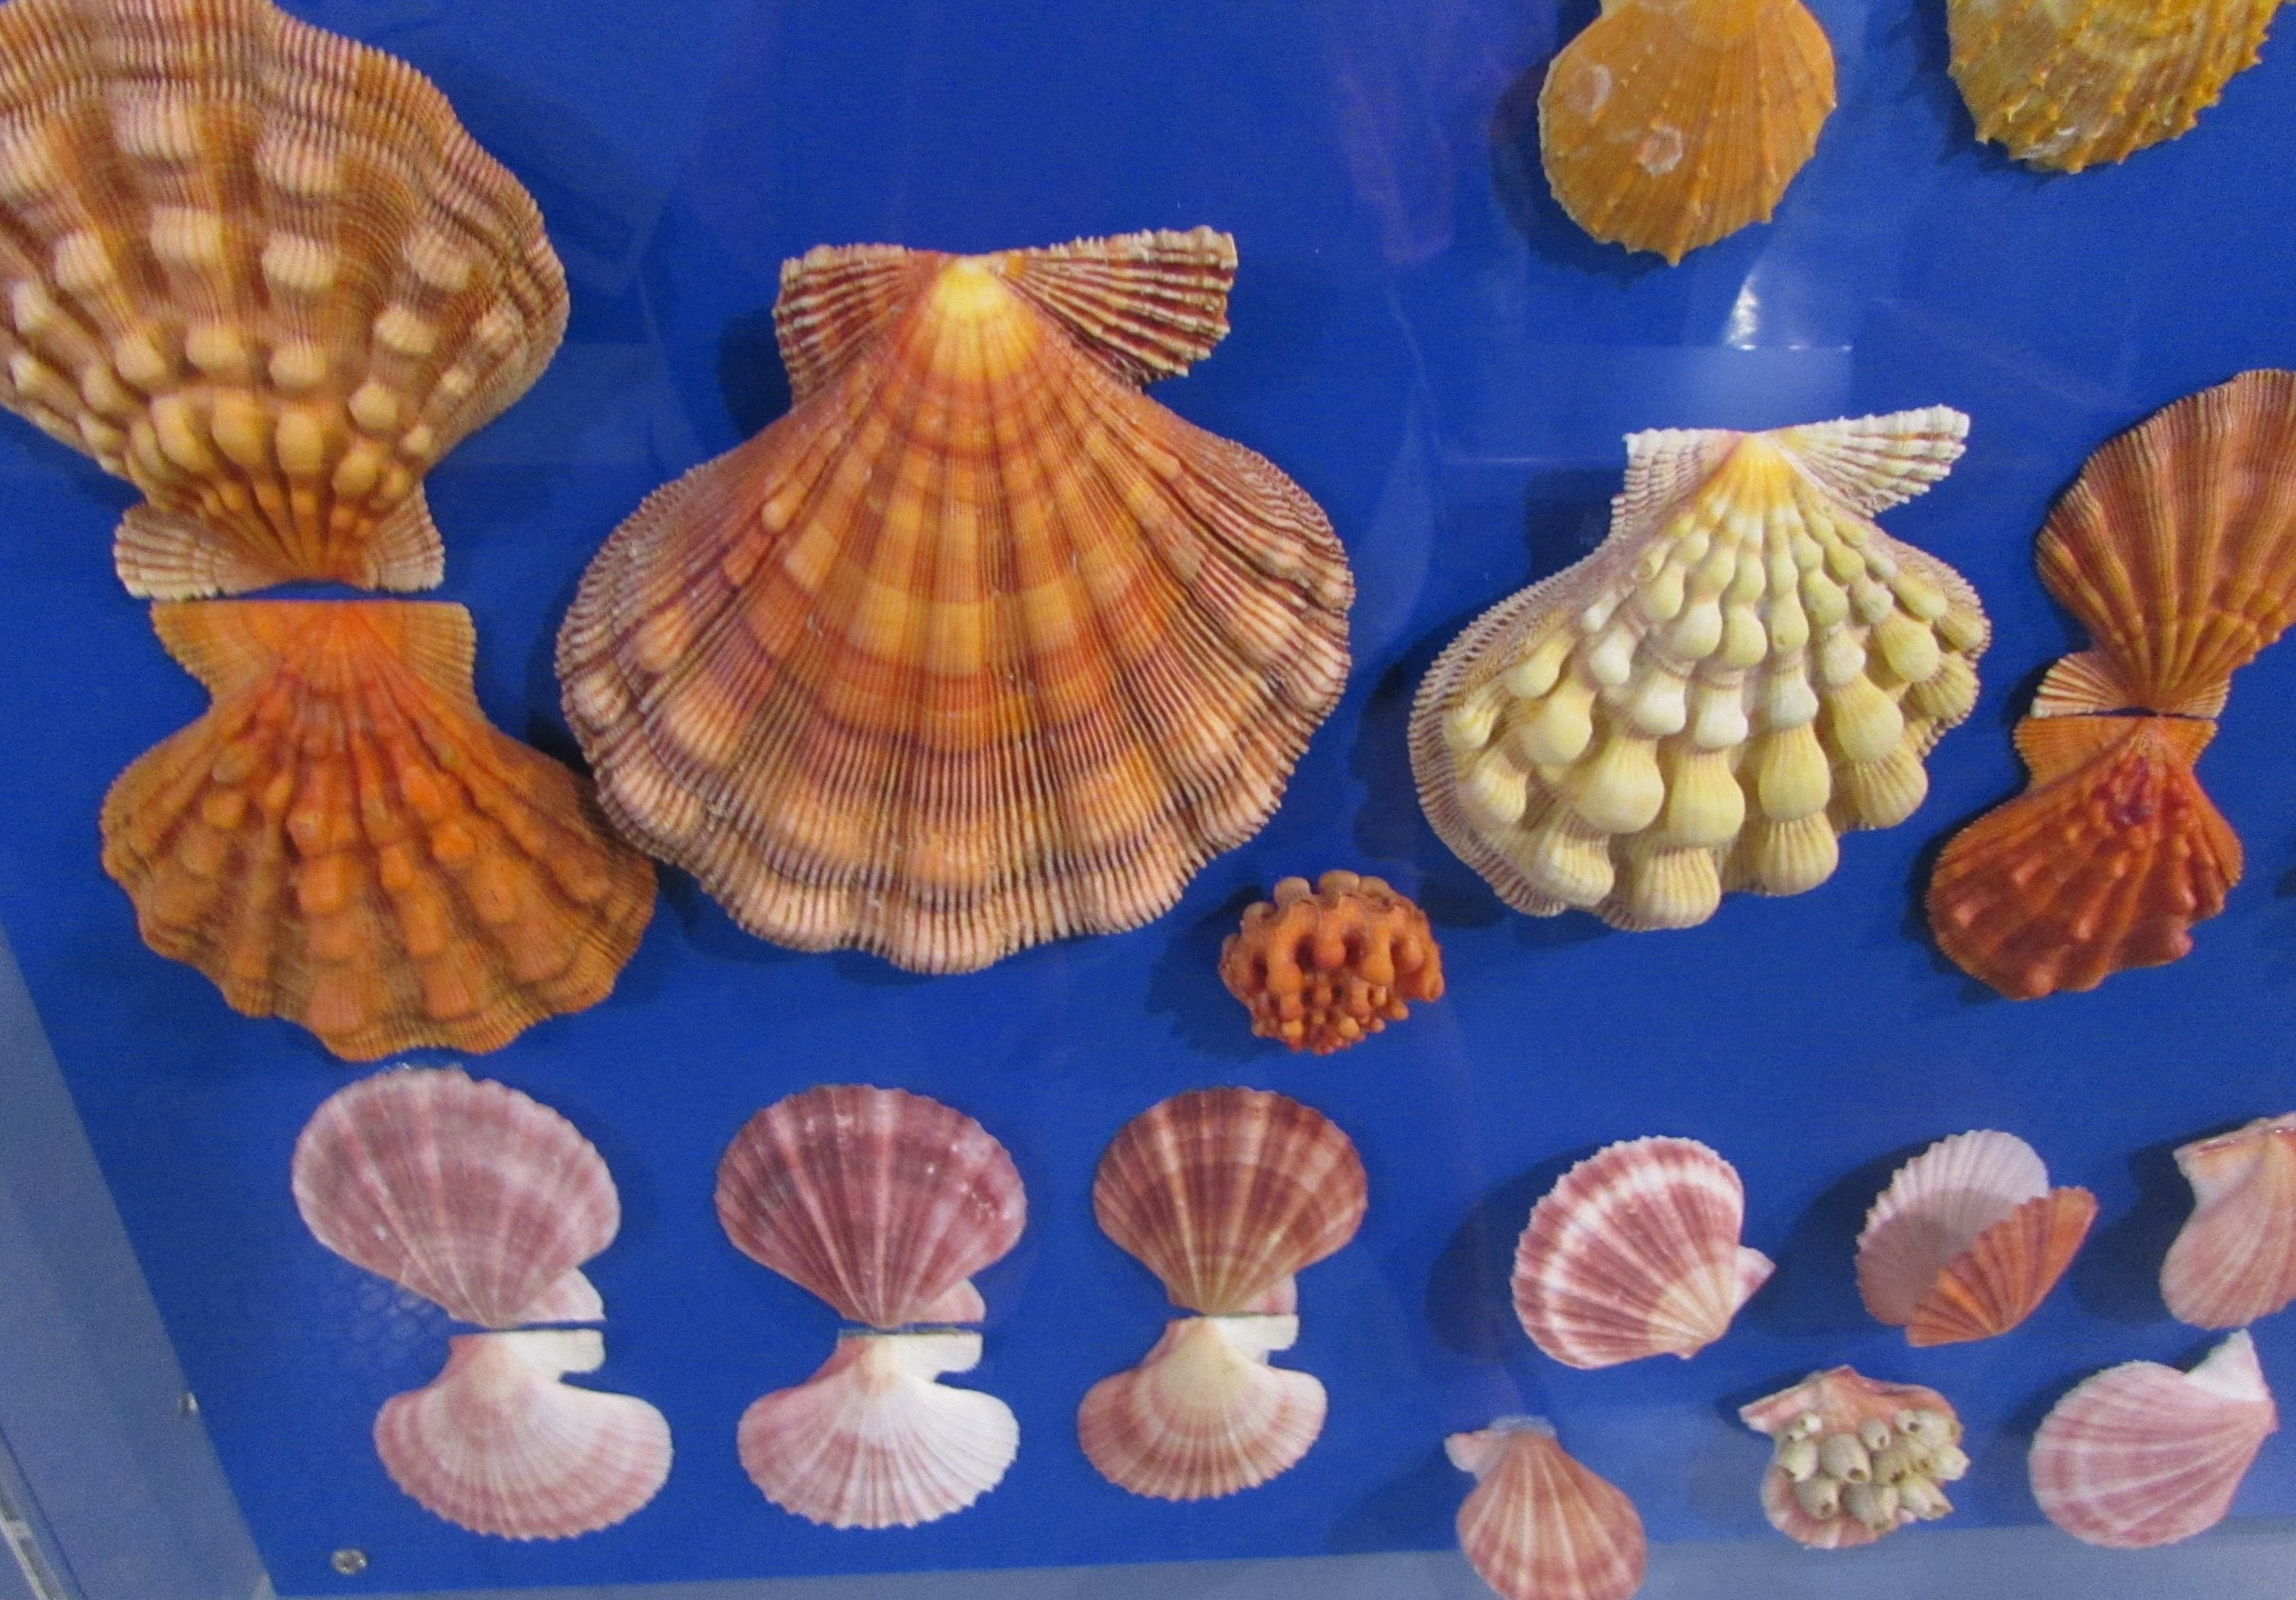 Display at the Shell Museum of some fabulous Lion's Paw Scallops.